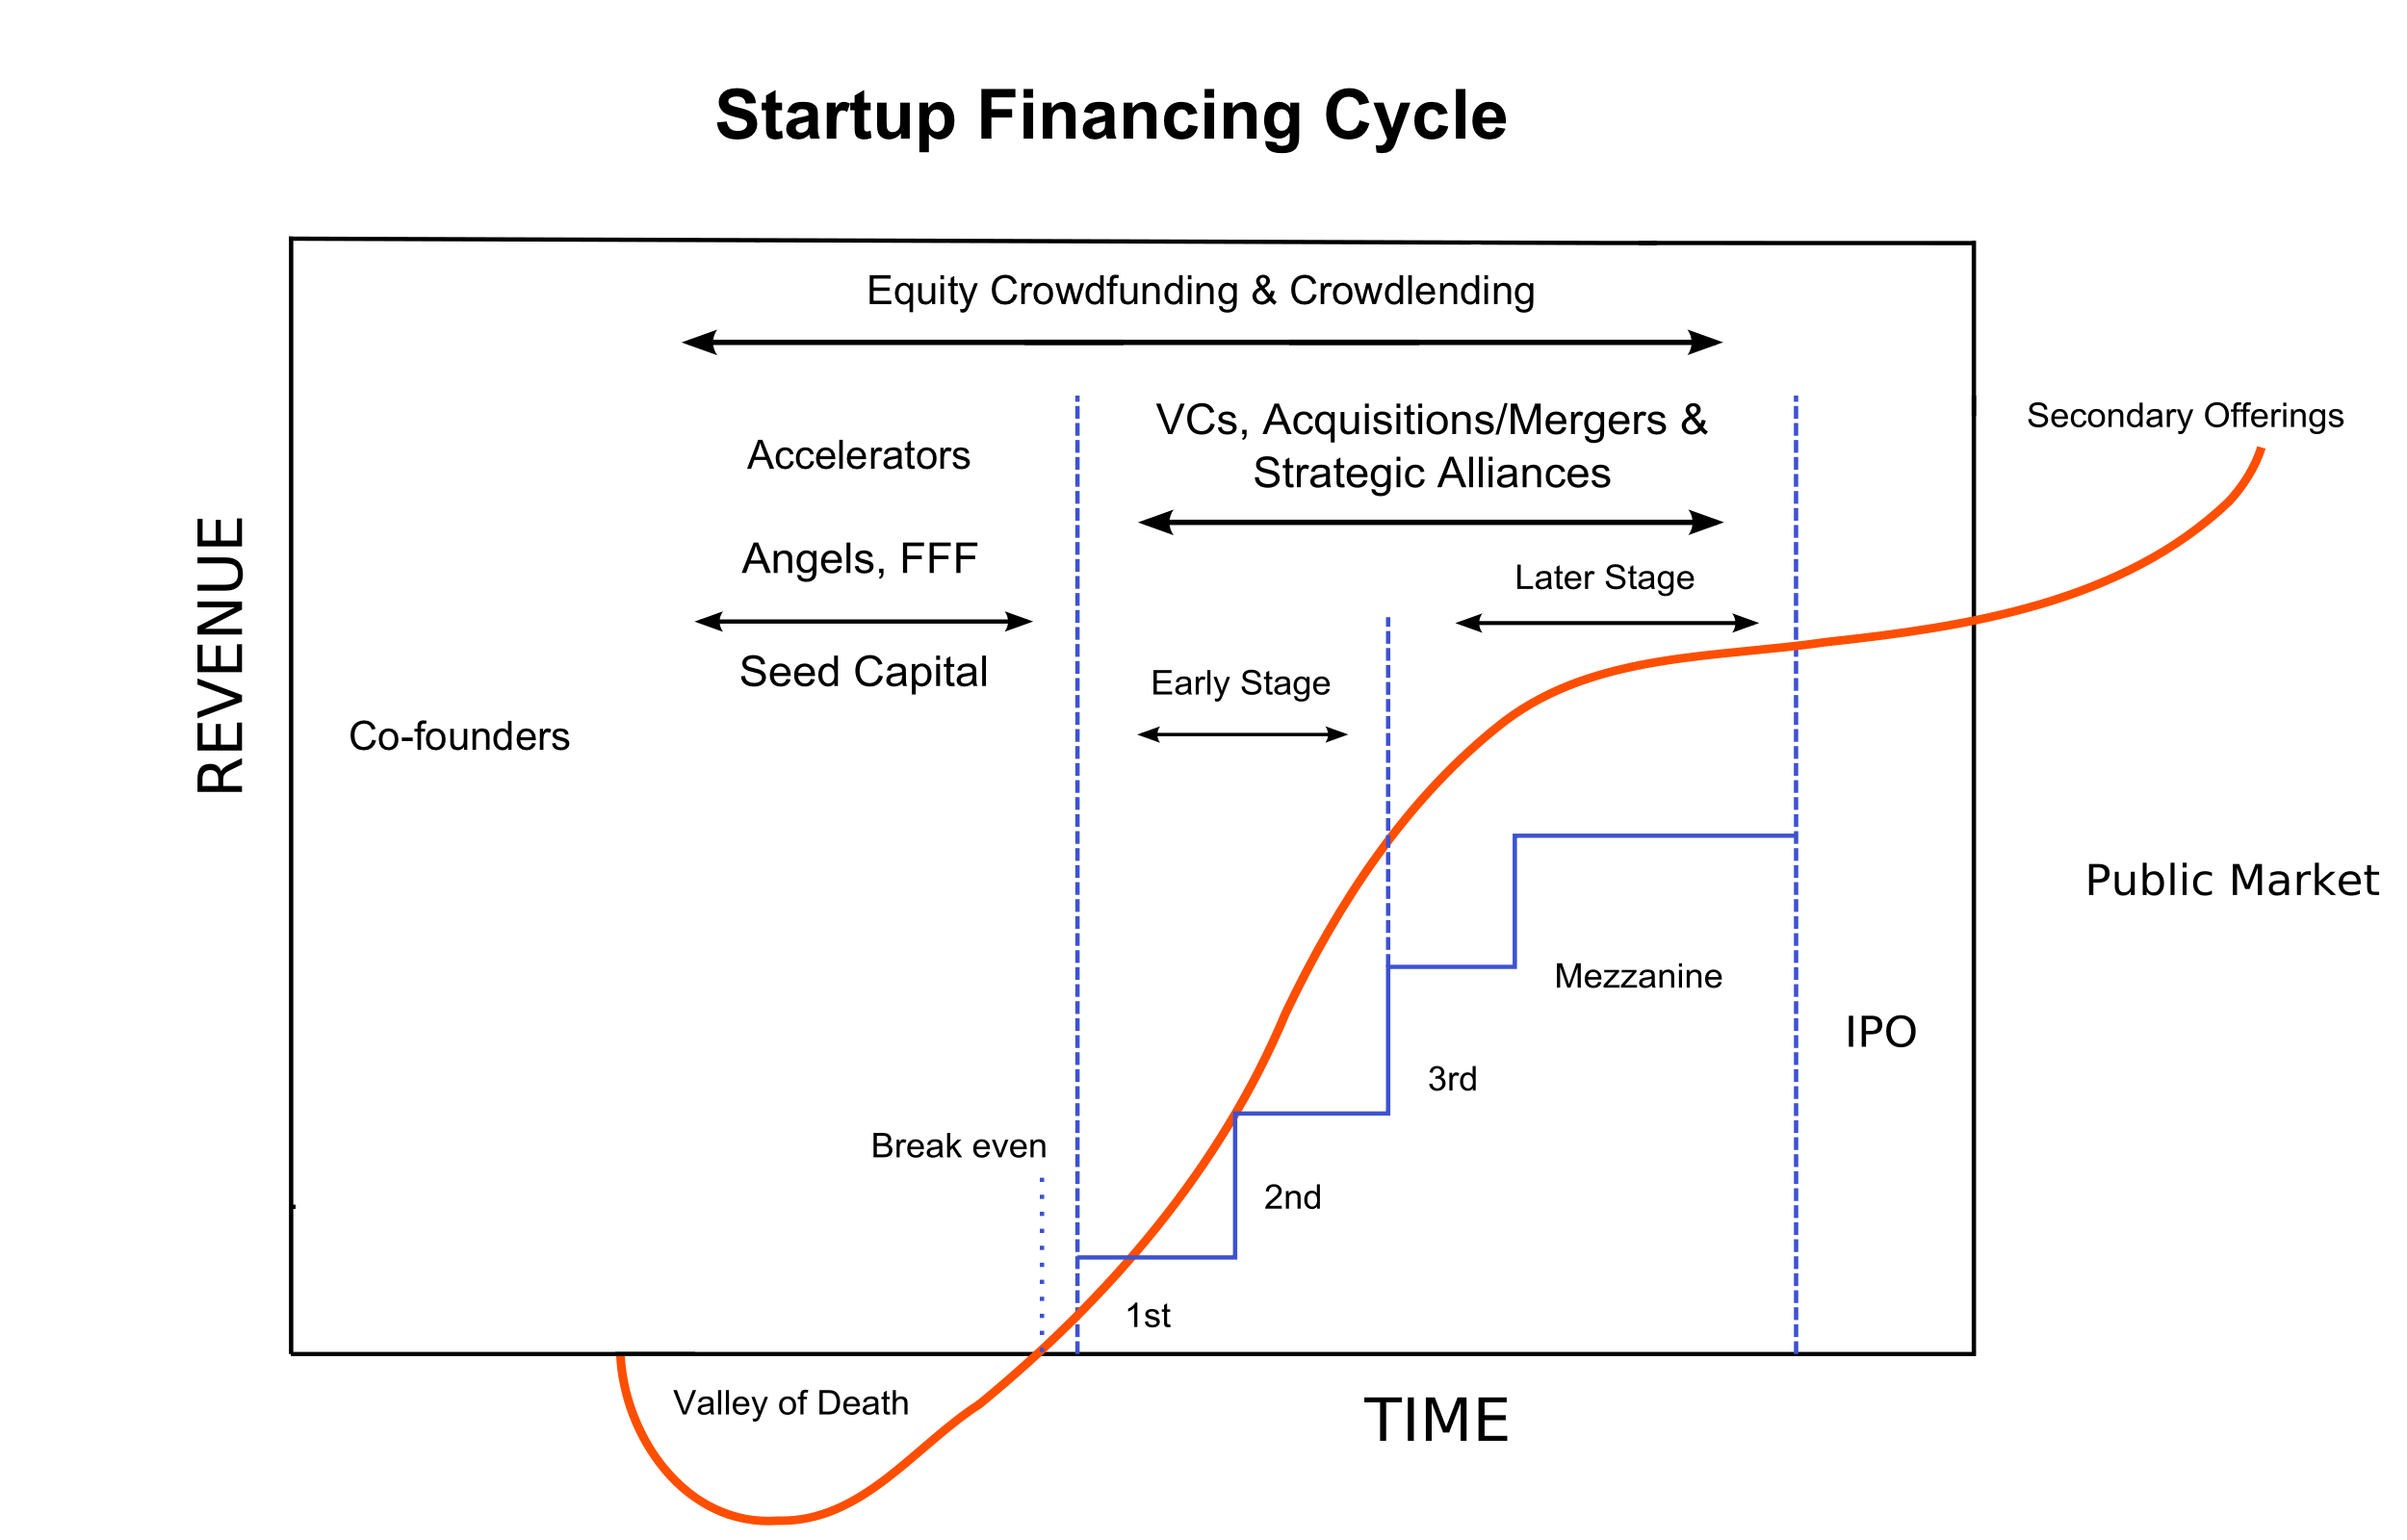 File Startup Financing Cycle